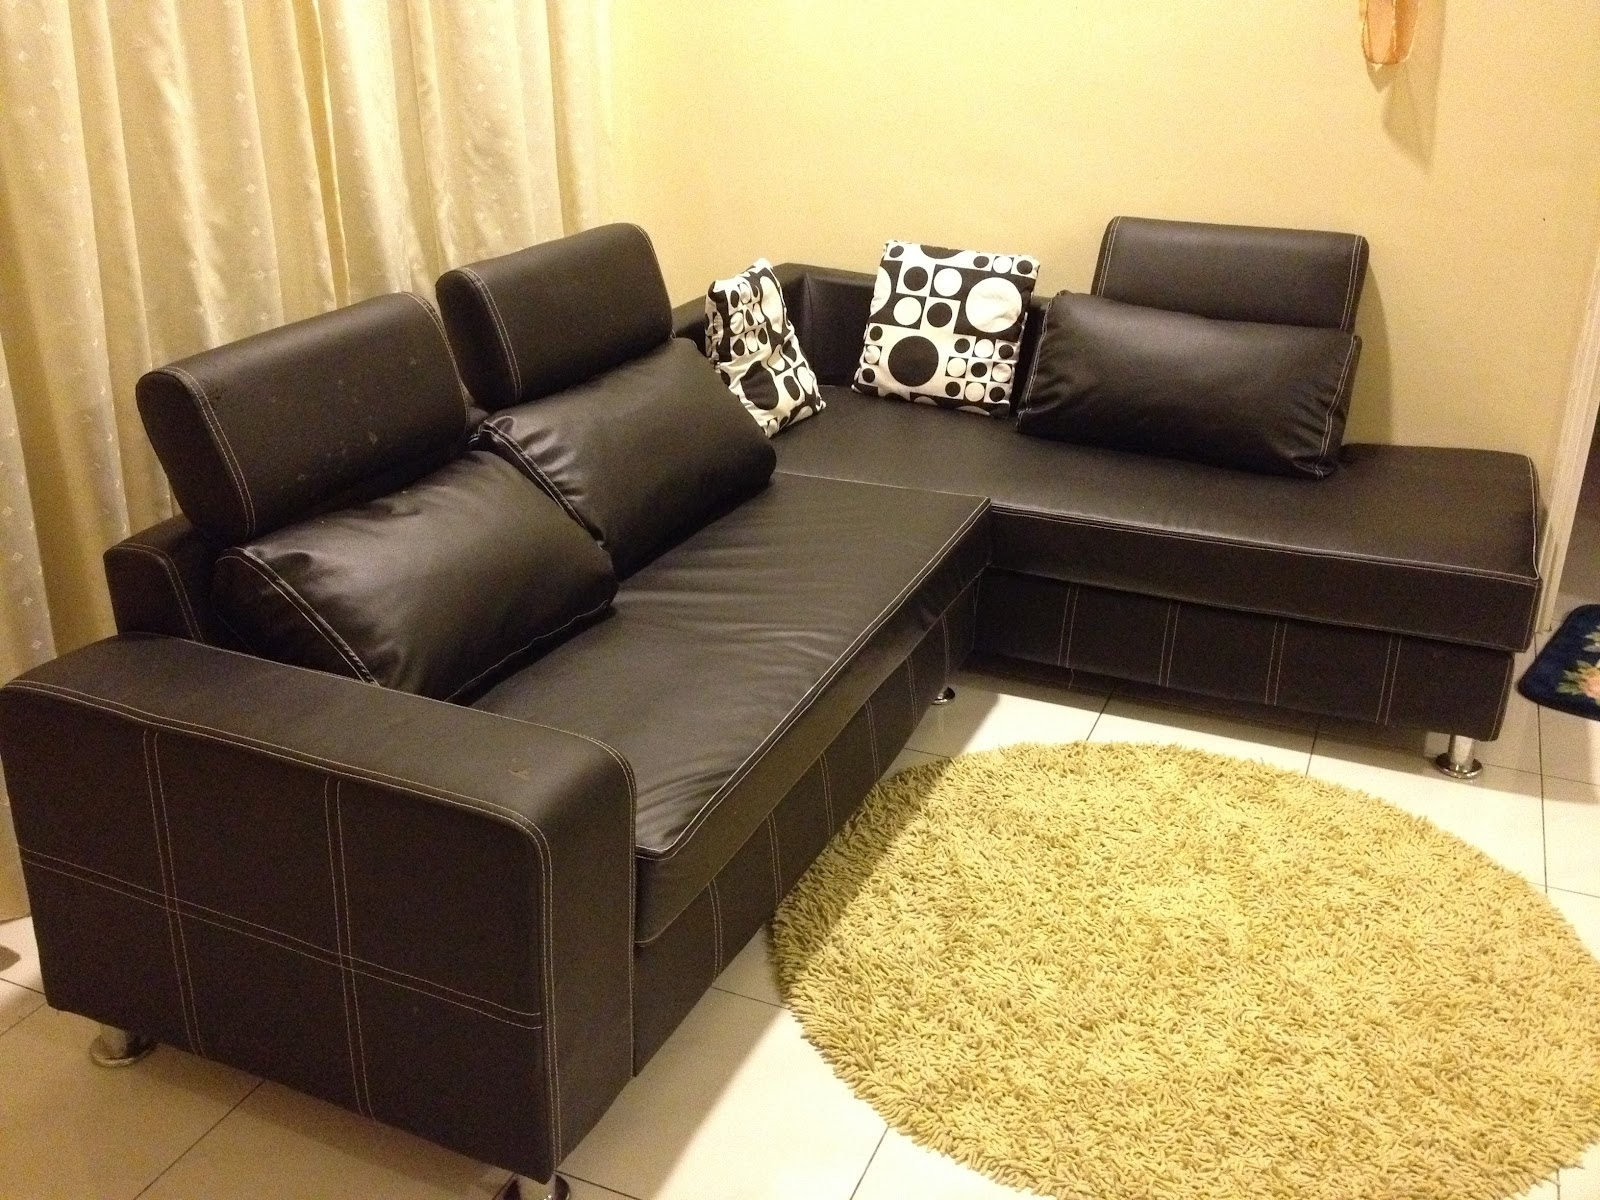 The Most Popular Leather Sofa For Sale Philippines Within Sofa With Regard To Sectional Sofas In Philippines (Image 9 of 10)